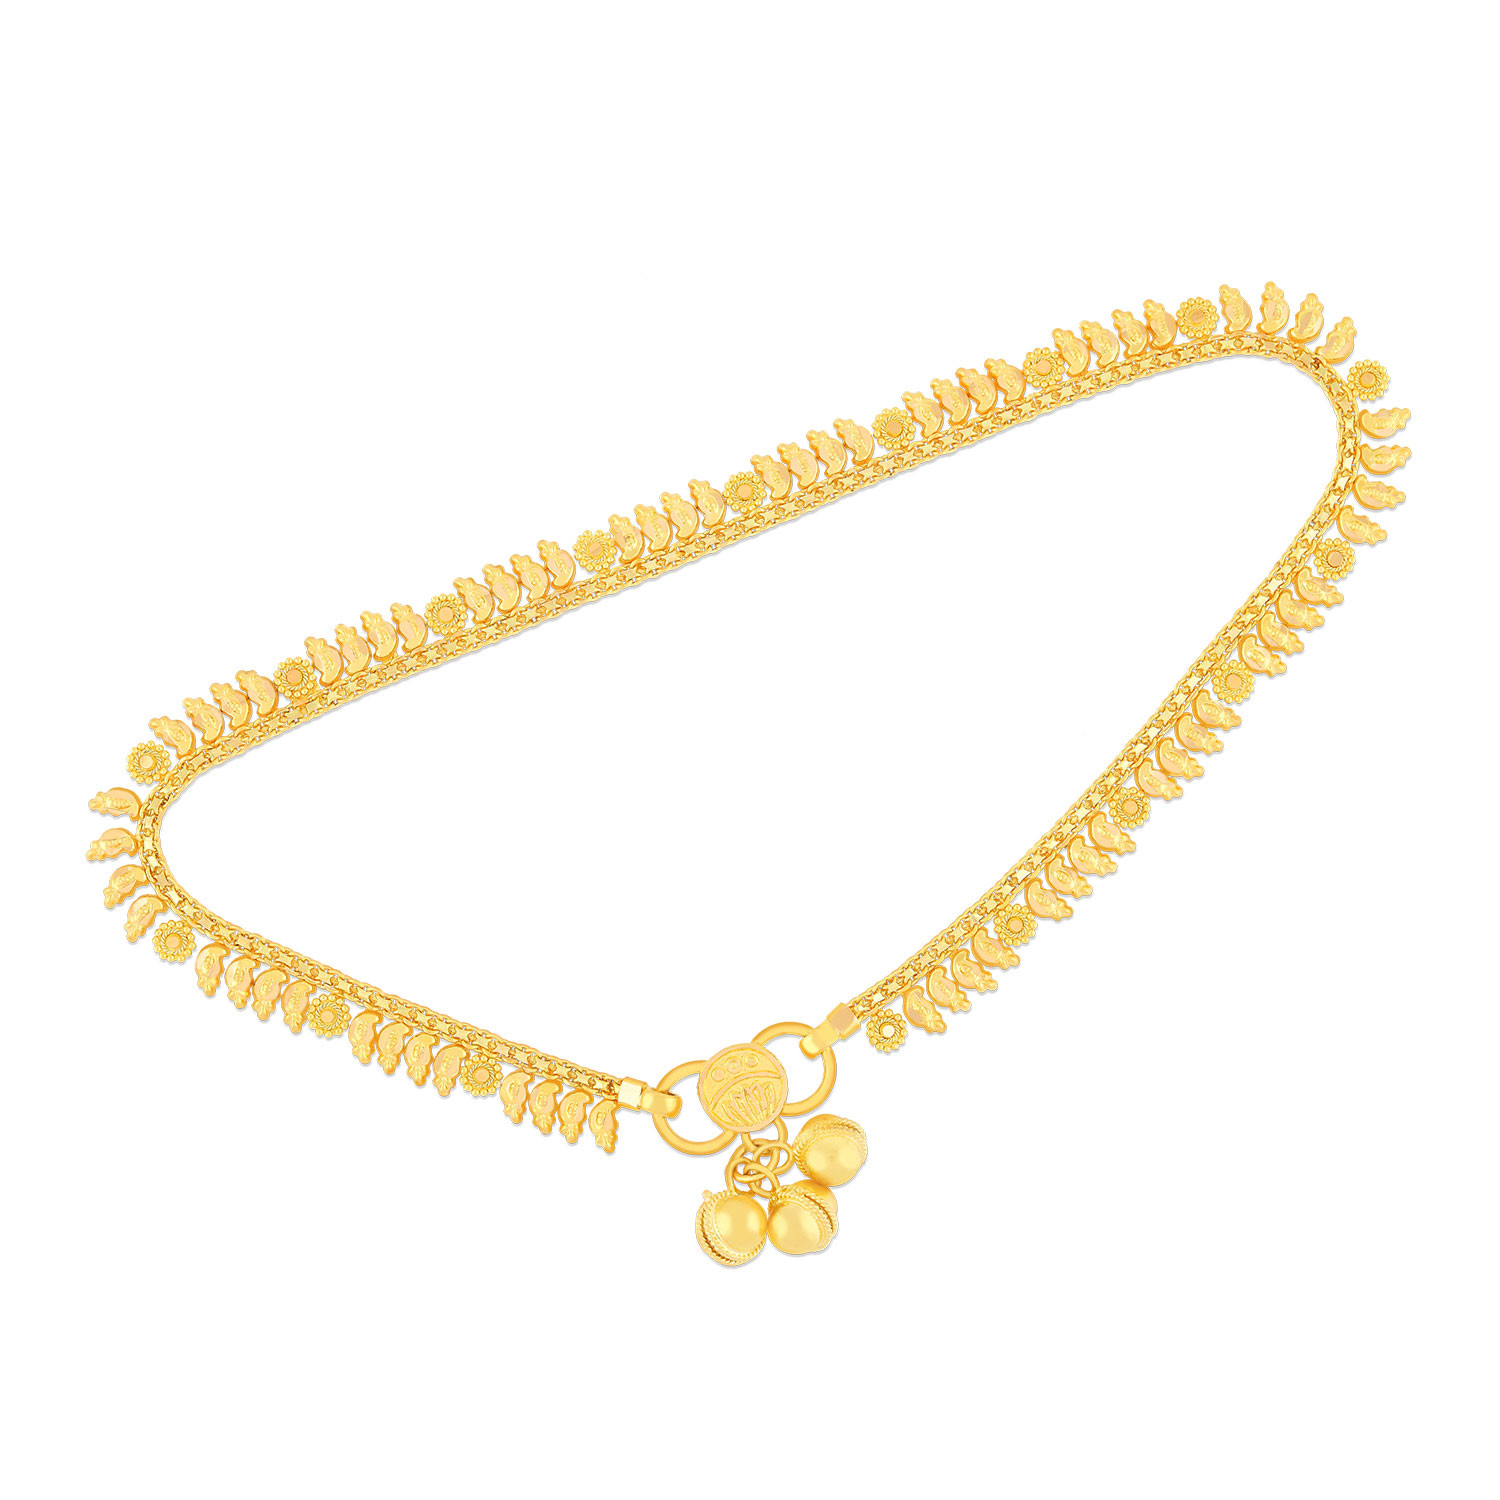 hj chain plumeria jewelry anklet gold yellow singapore